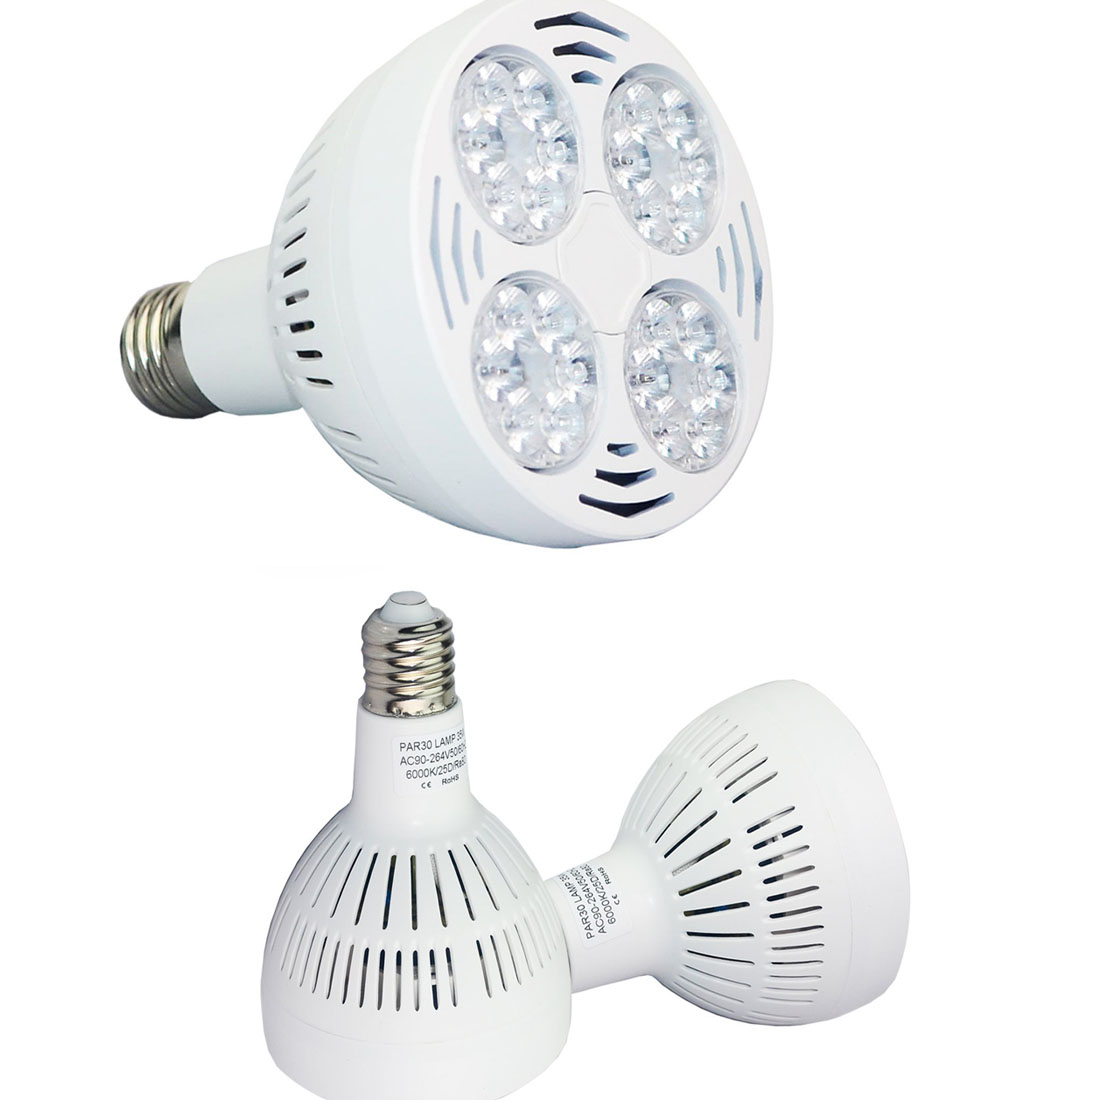 110V 35Watt 6000k Daylight Bright White Swimming Pool LED Light Waterproof Bulb